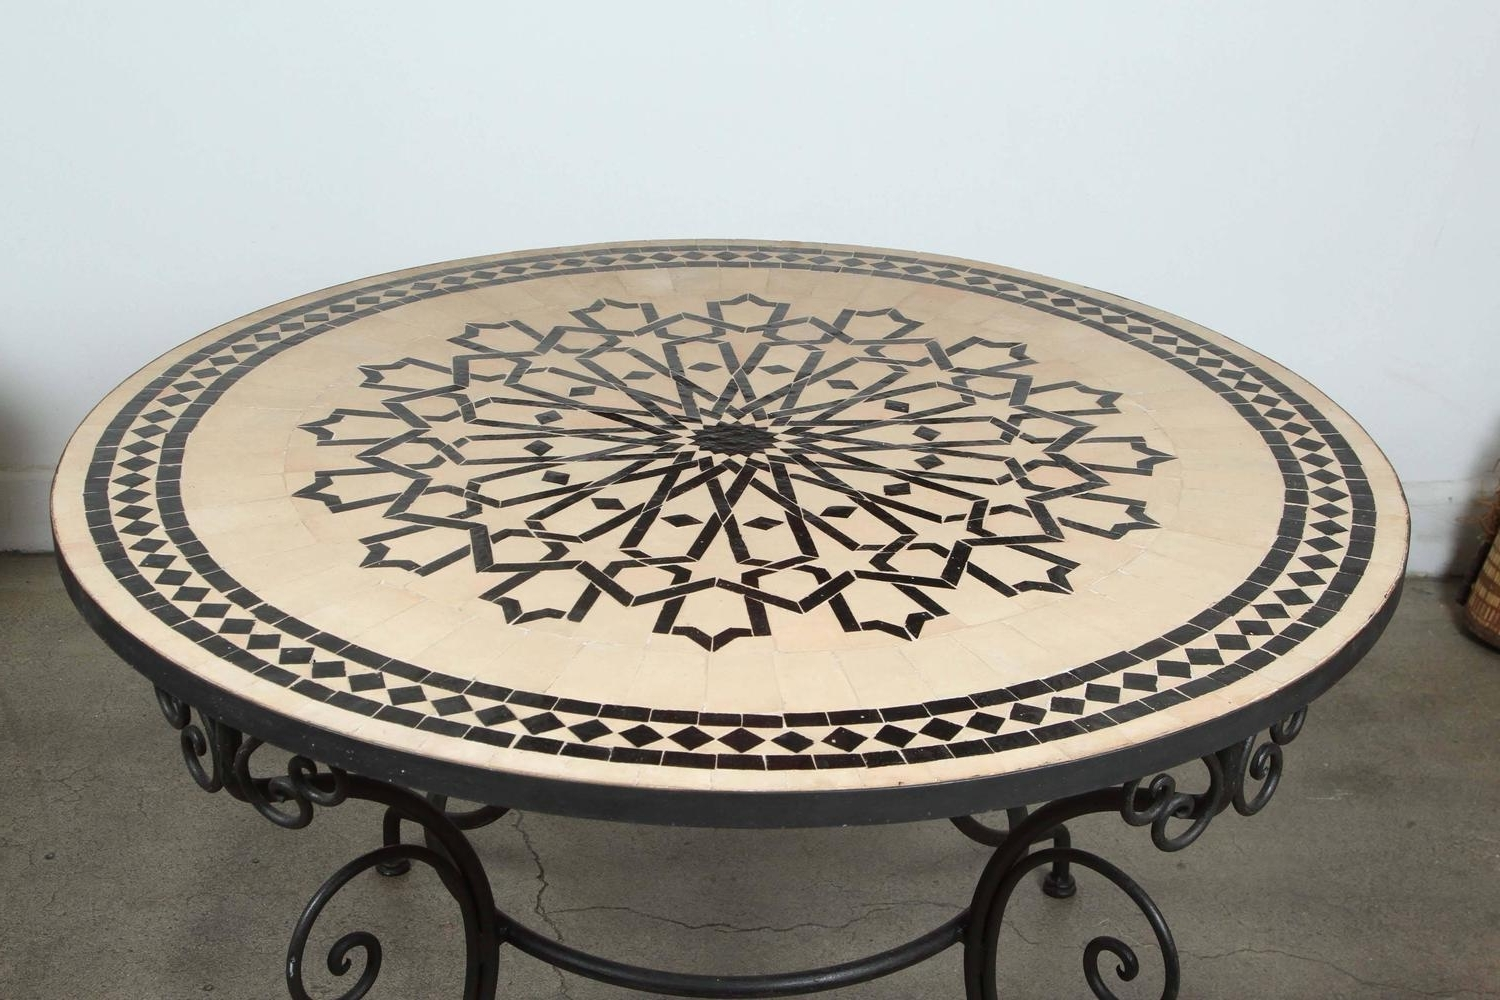 Trendy Moroccan Outdoor Round Mosaic Tile Dining Table On Iron Base 47 In For Mosaic Dining Tables For Sale (View 23 of 25)